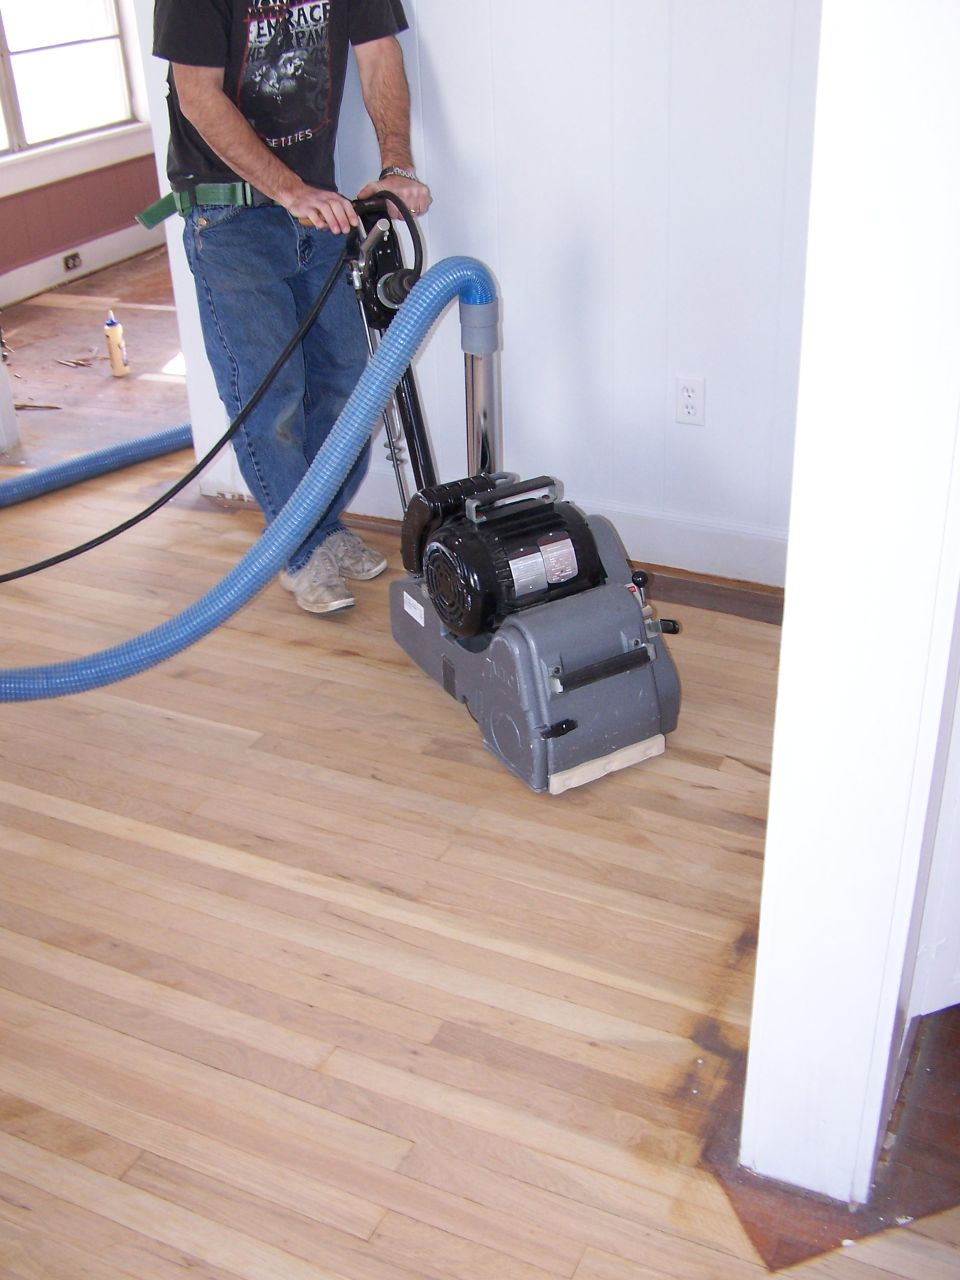 dustless-floor-sanding-machine - Dustless-floor-sanding-machine NewLifeHardwoods.com